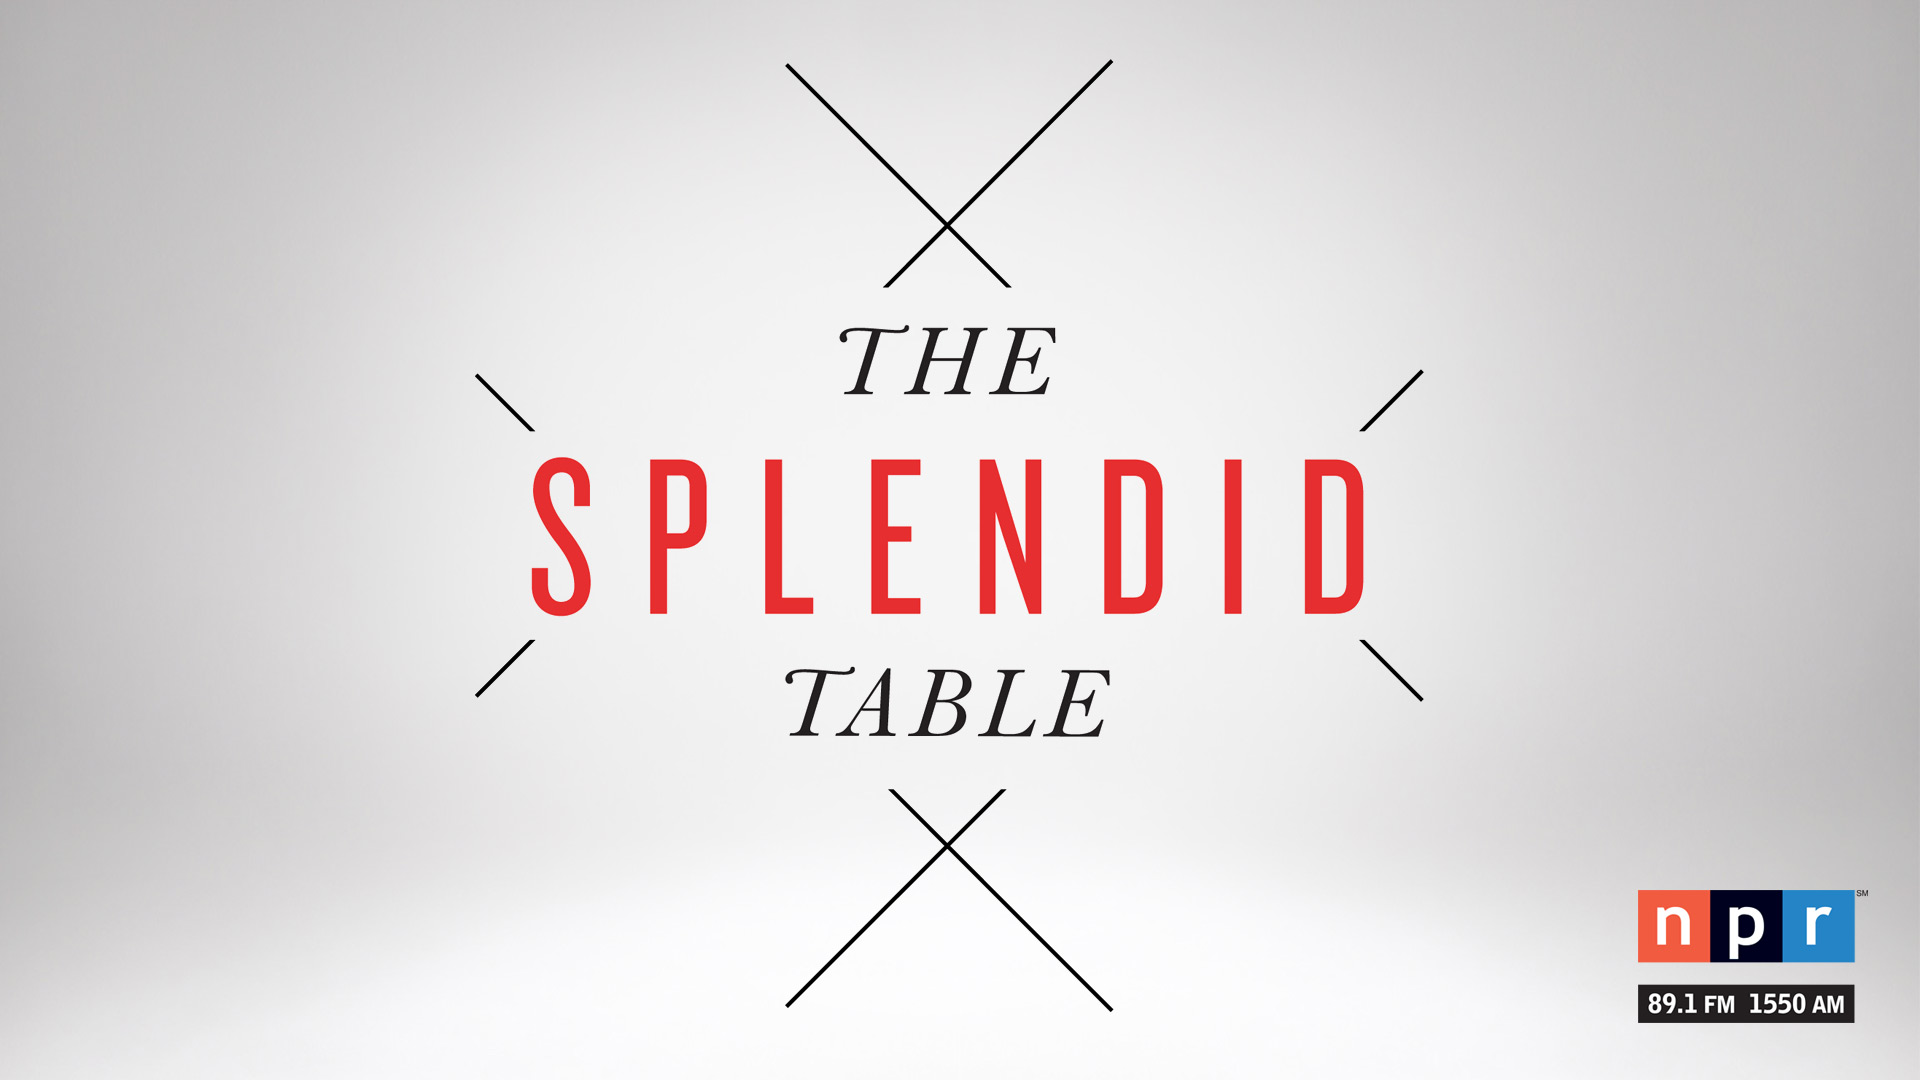 The Splendid Table airs Saturdays at 1 p.m. on NPR 89.1.